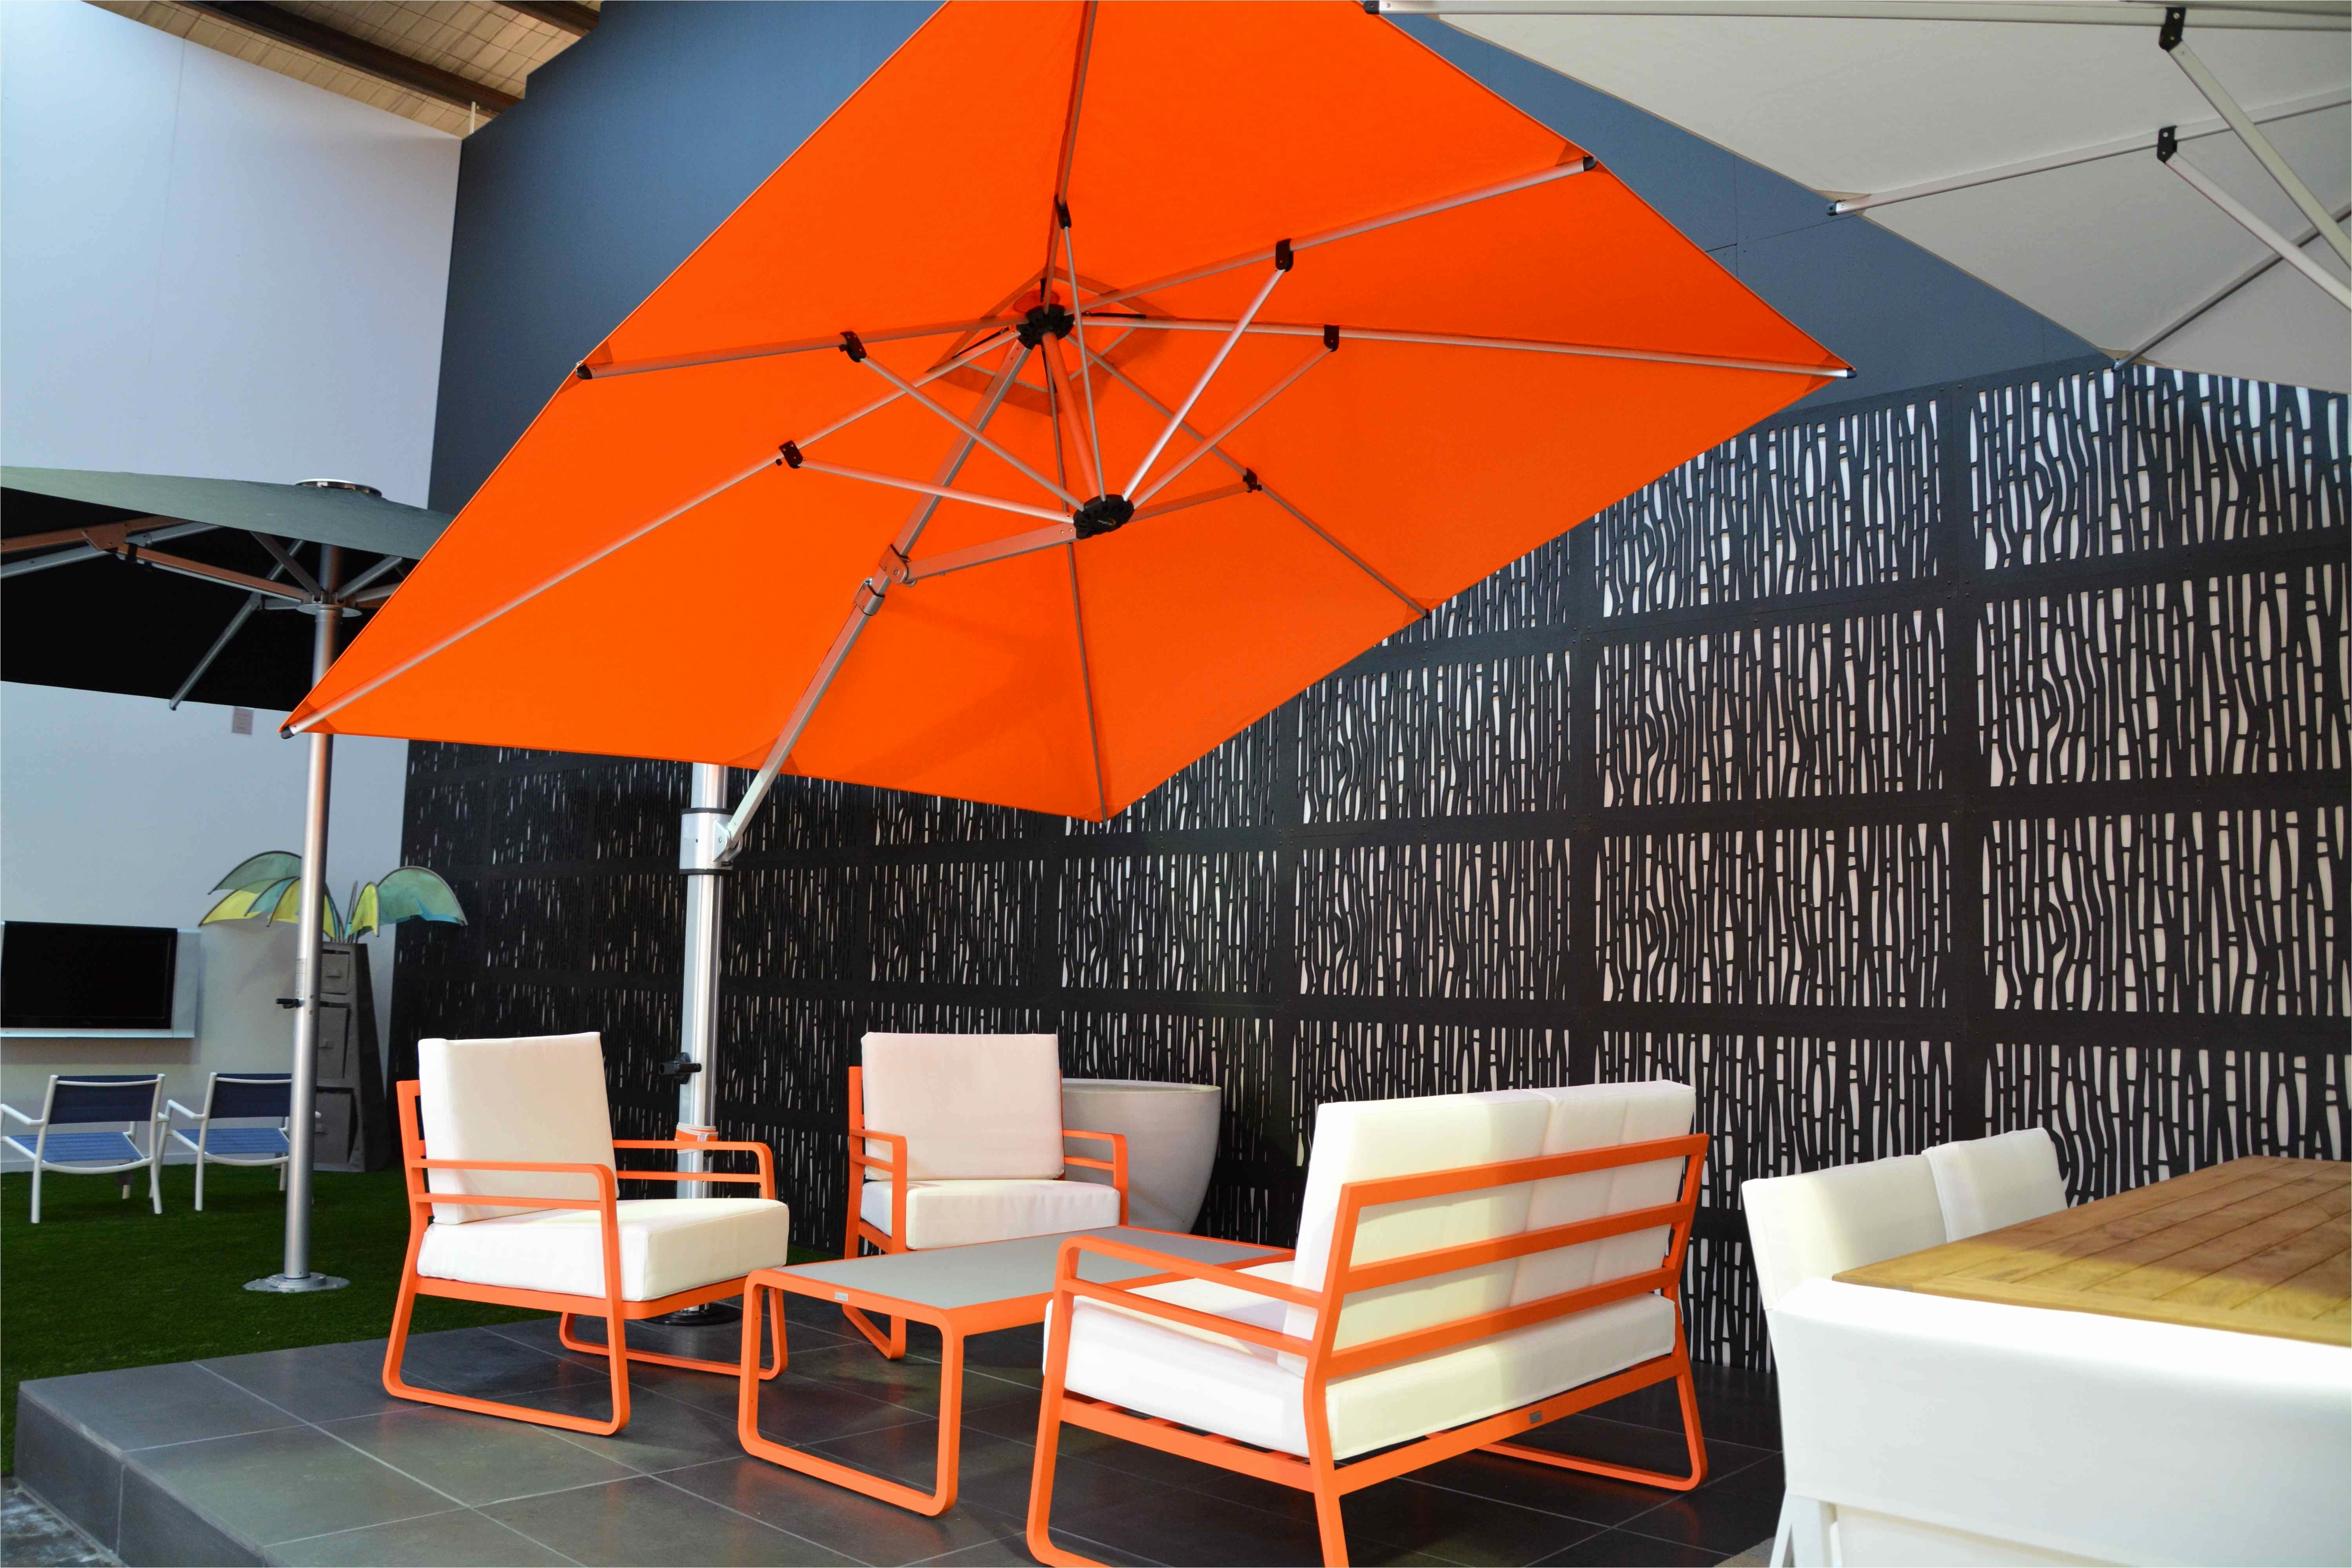 Sears Patio Umbrellas Throughout Latest Sears Patio Furniture Clearance Inspirational Sears Patio Umbrellas (View 18 of 20)